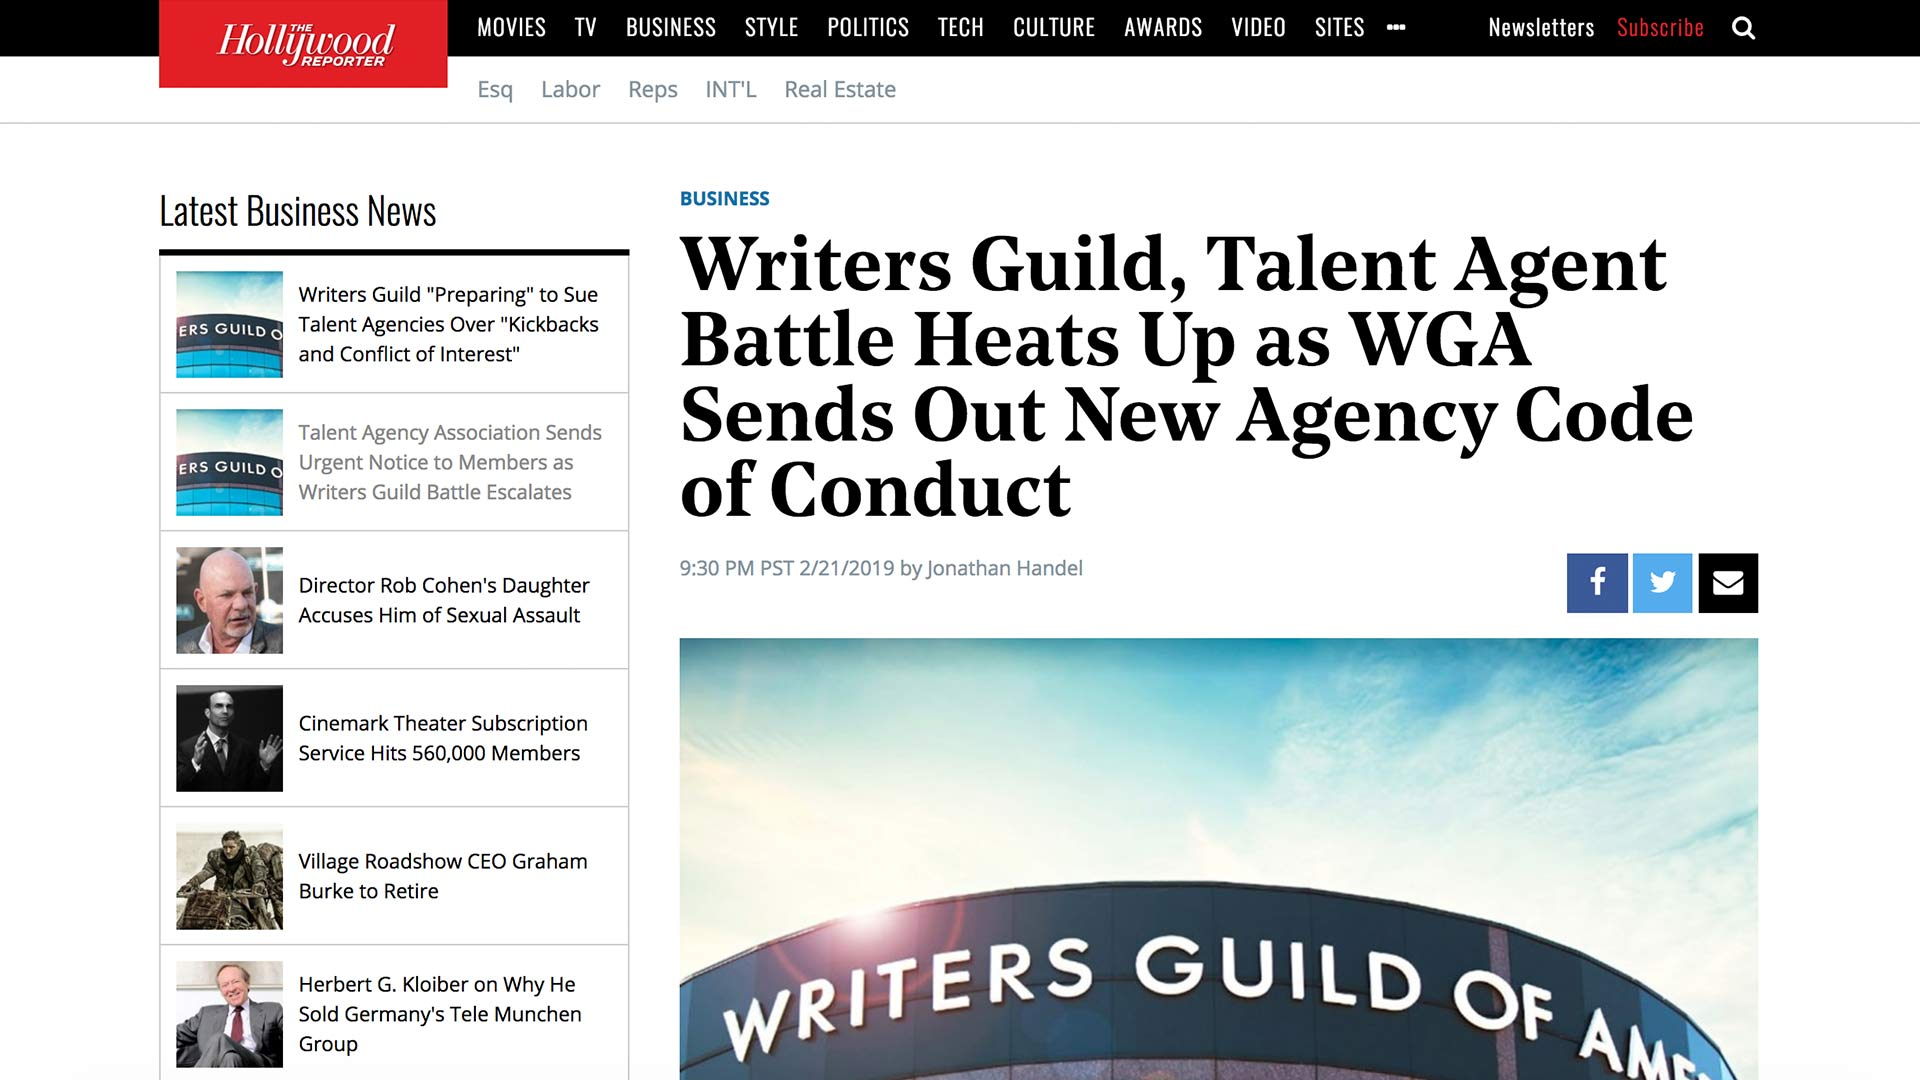 Fairness Rocks News Writers Guild, Talent Agent Battle Heats Up as WGA Sends Out New Agency Code of Conduct